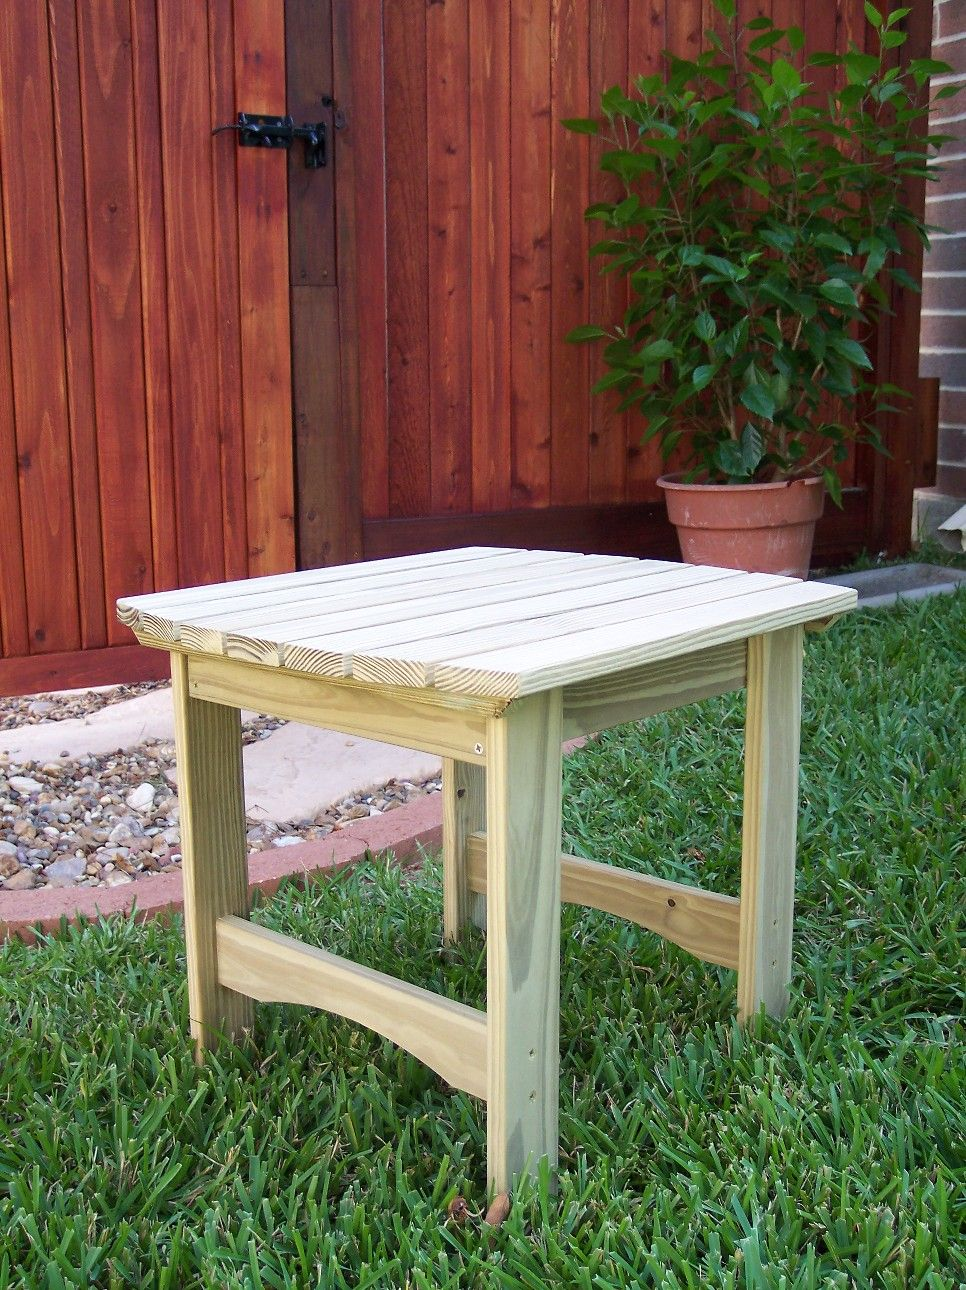 Adirondack Table Small Treated Pine Pallet Projects, Projects To Try,  Outdoor Ideas, Outdoor - Adirondack Table Small Treated Pine Outdoor Furniture Pallet